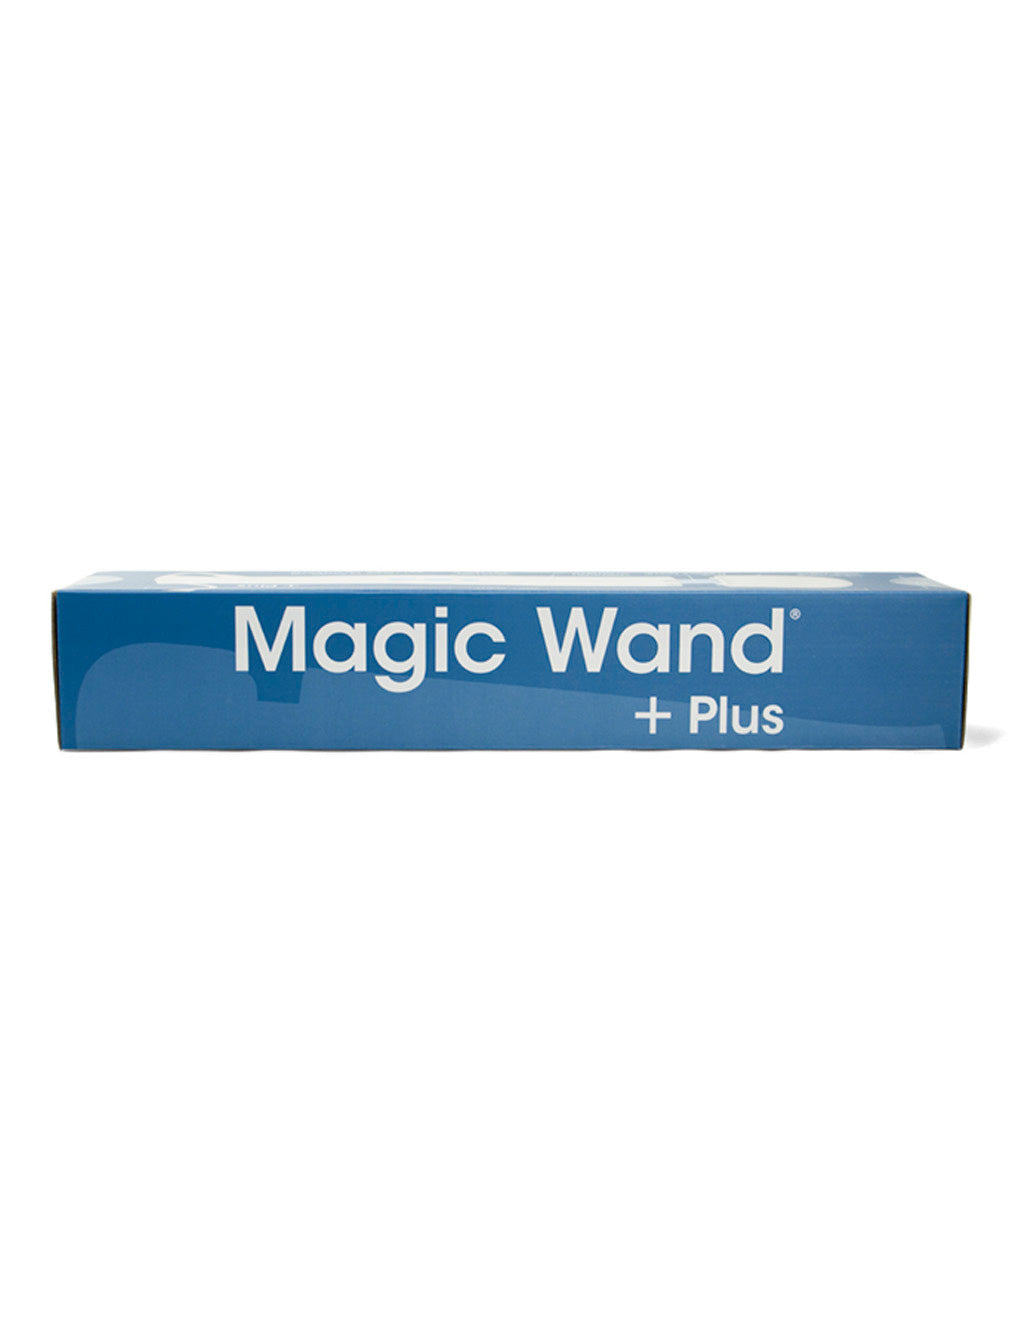 Hitachi Magic Wand Plus Massager- Box- Side